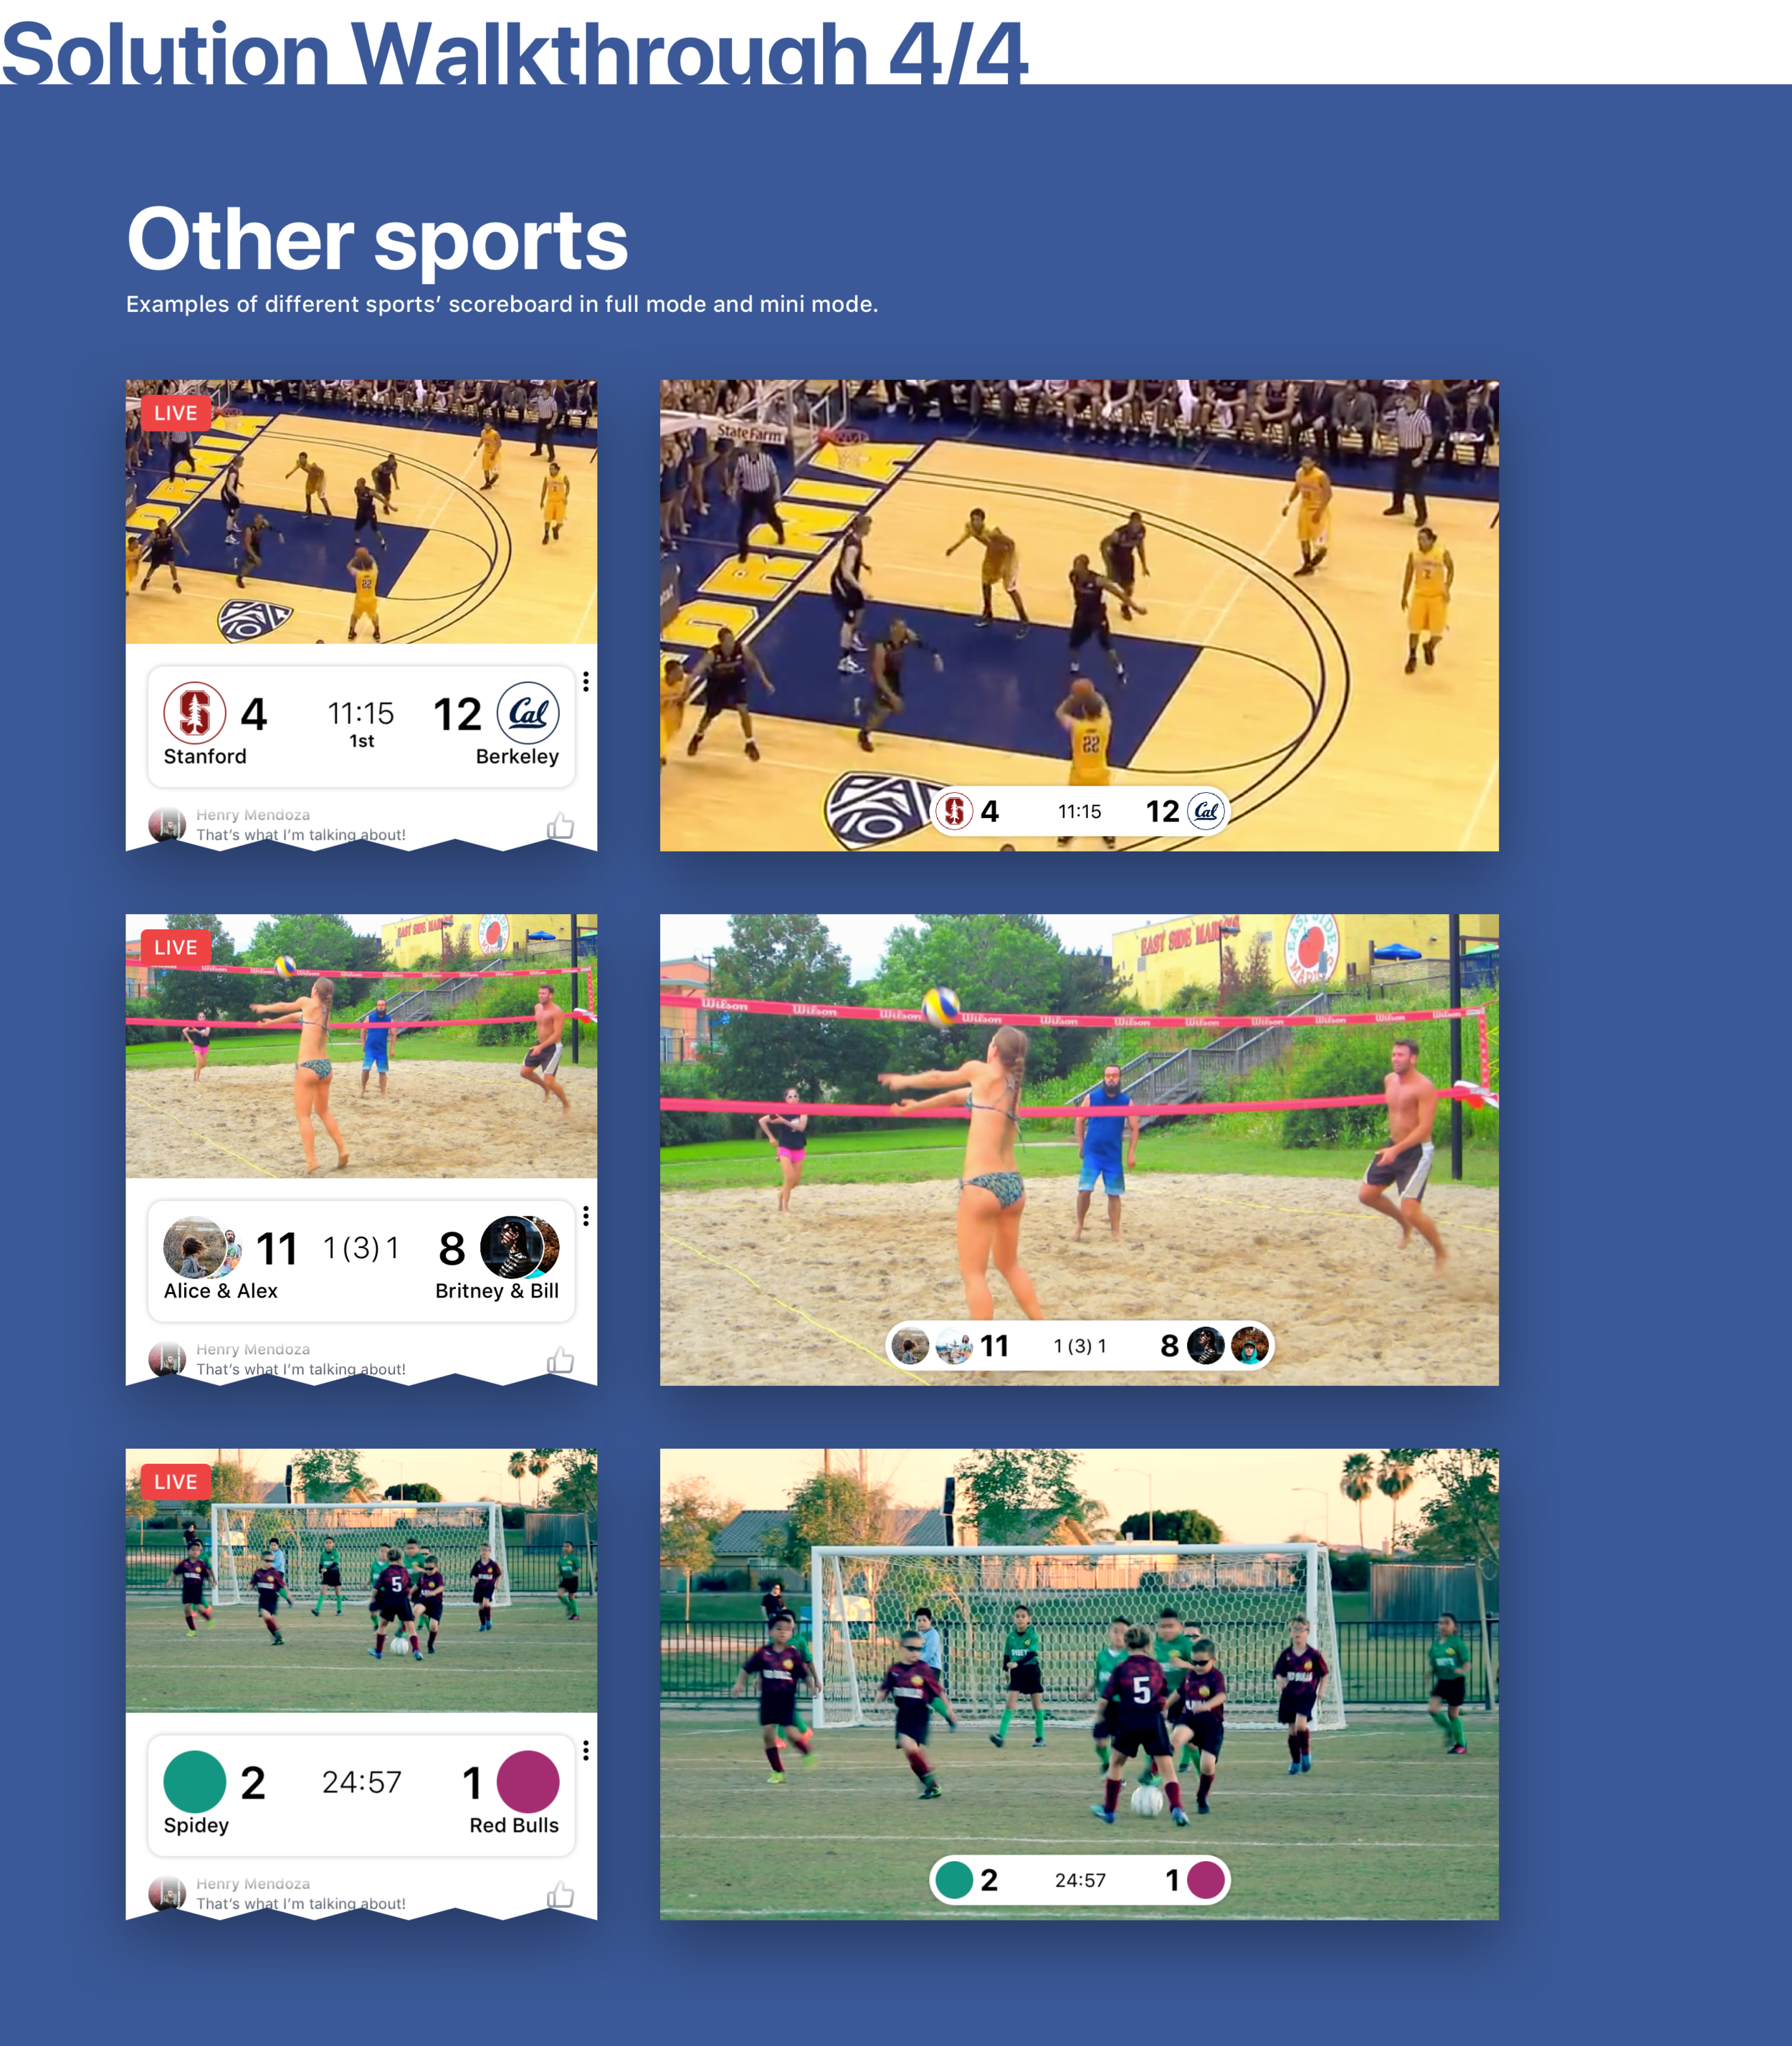 LVS - solution walkthrough - other sports@2x.png